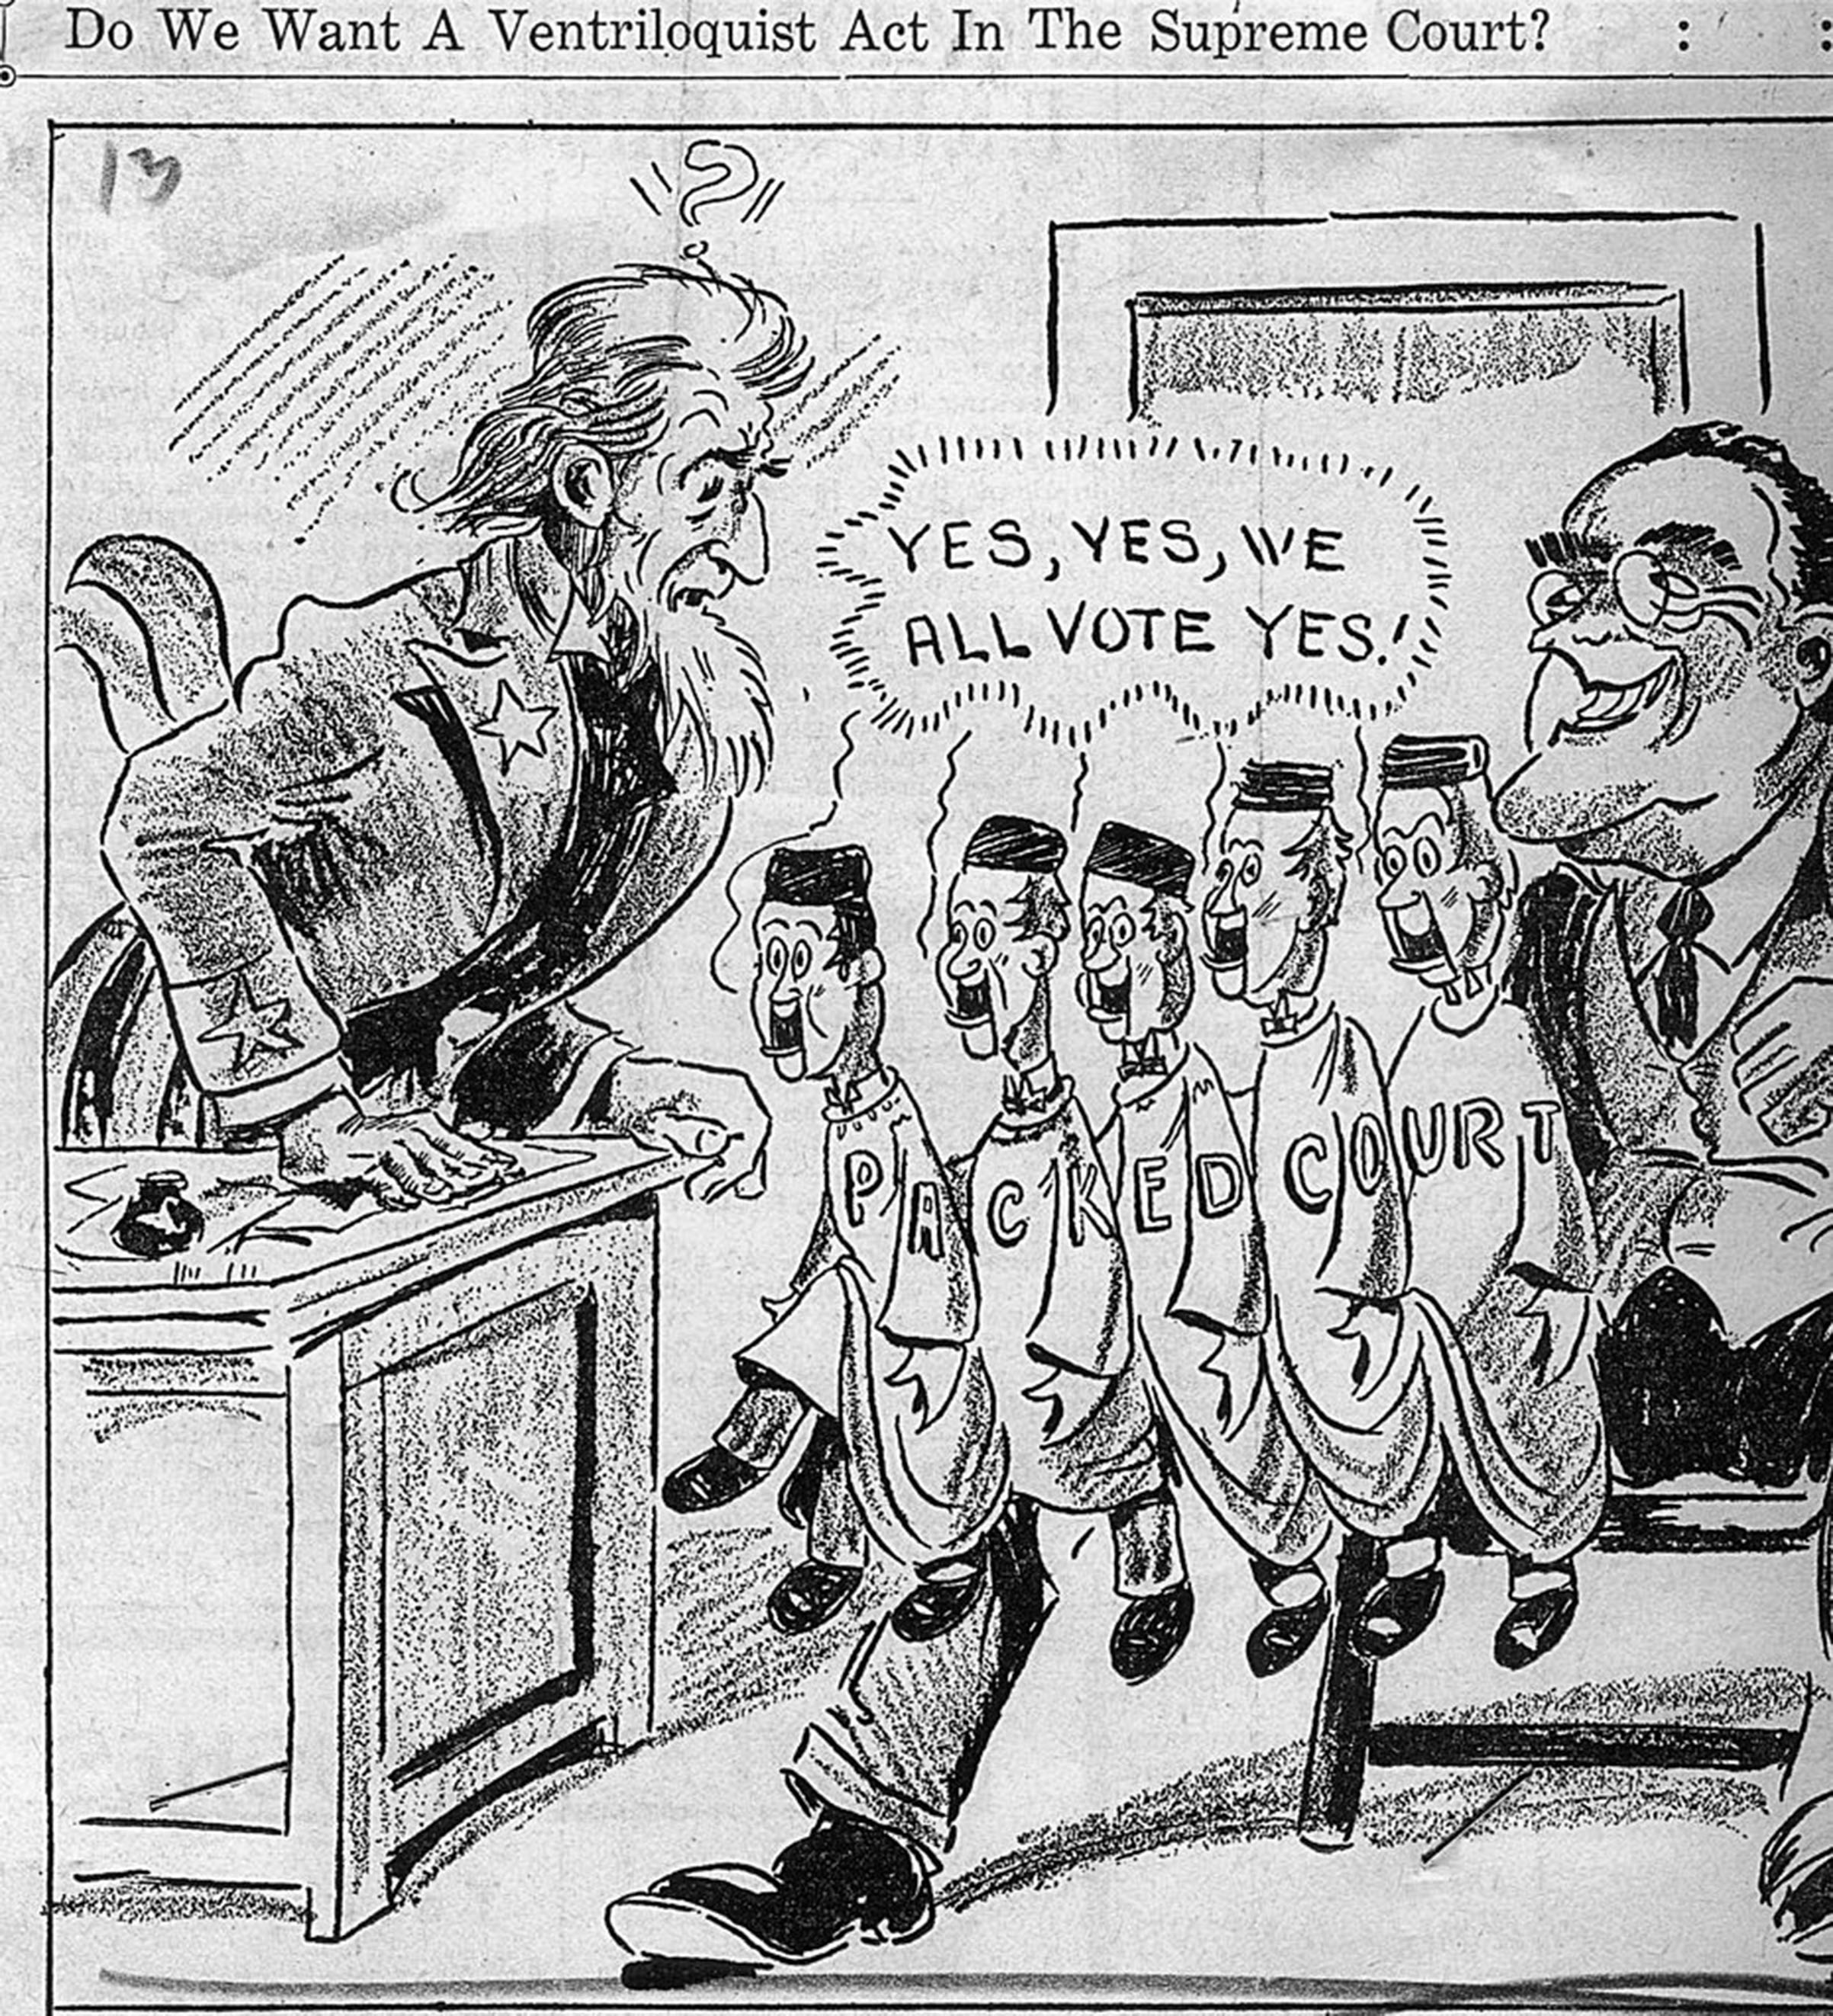 A Feb. 14, 1937, cartoon 'Do We Want A Ventriloquist Act In The Supreme Court?' depicts the five new judges that FDR could potentially point per his proposed court-packing plan as the President's puppets.